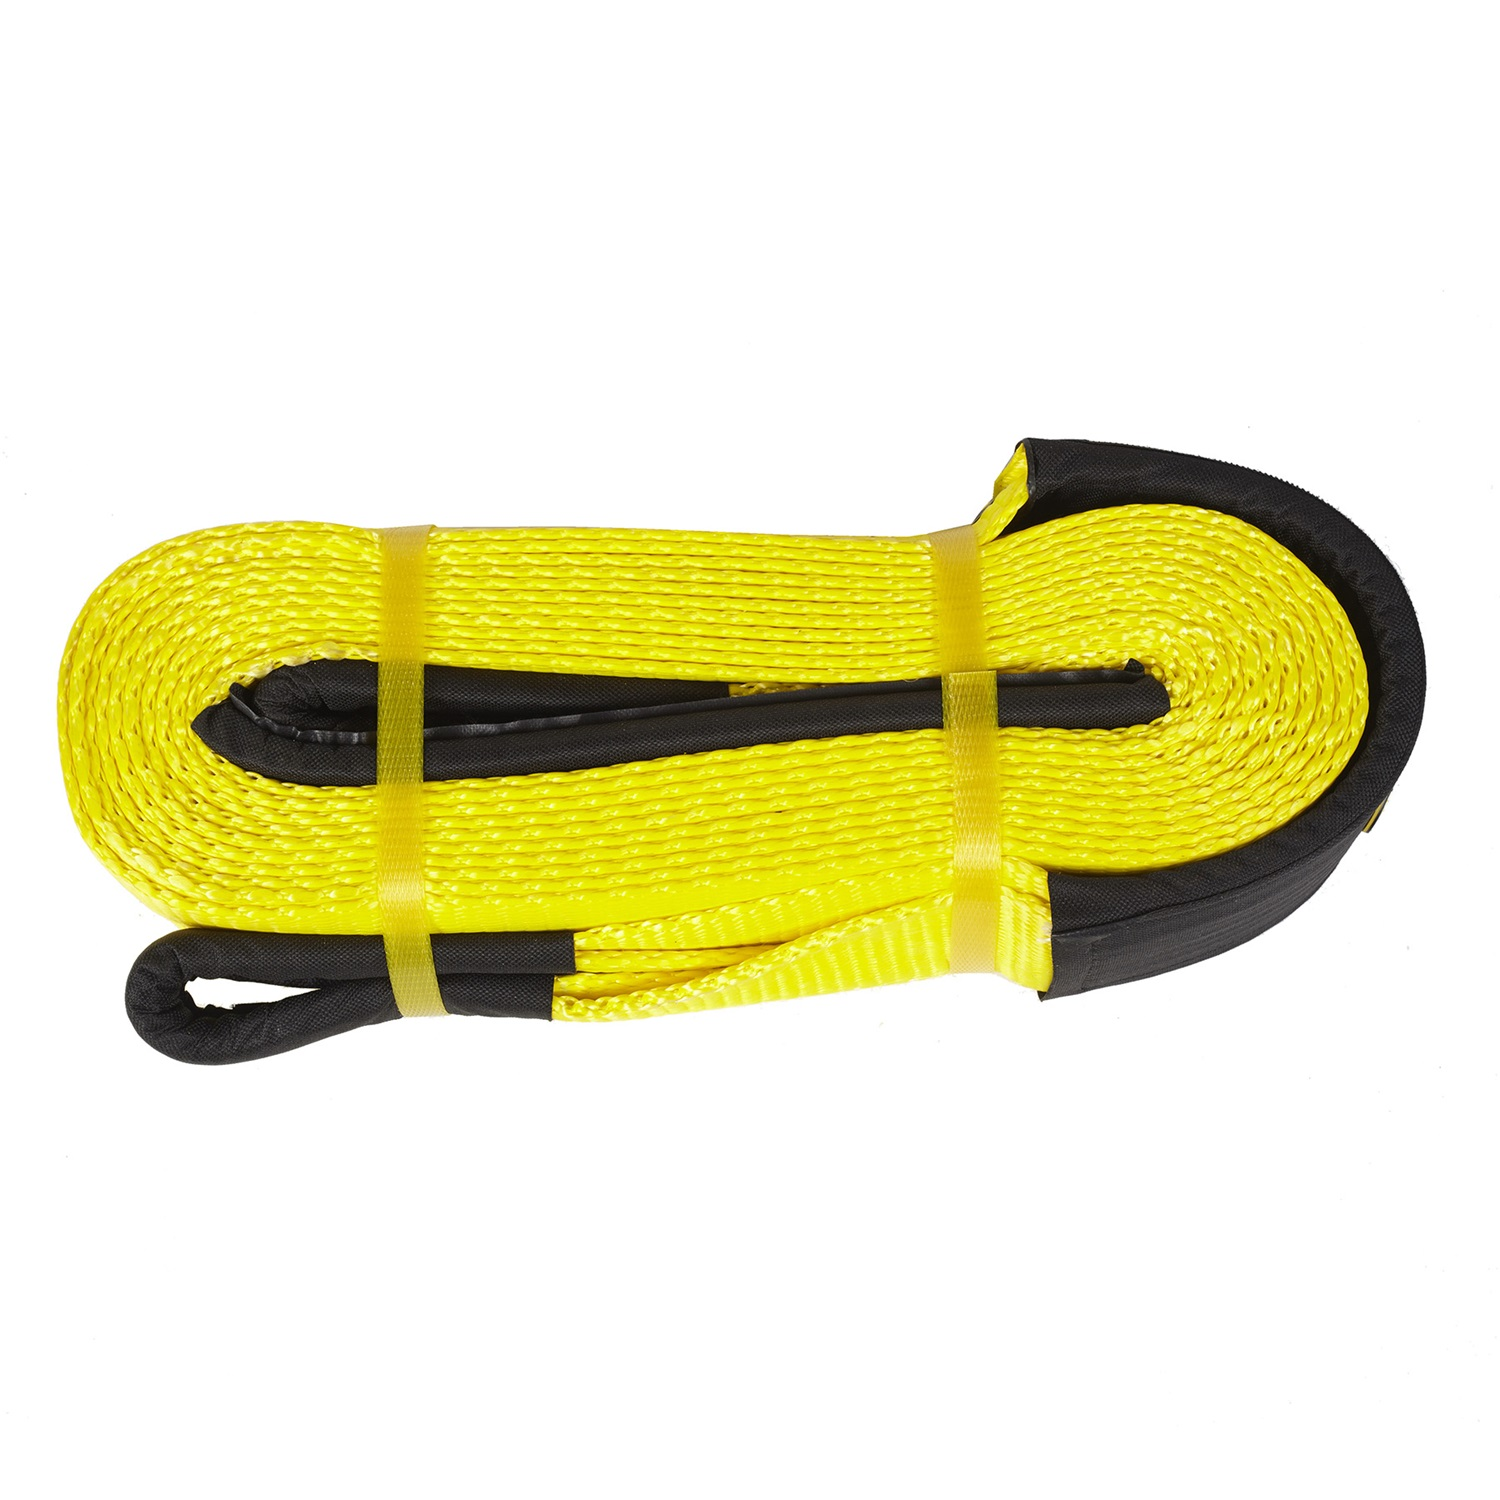 SmittyBilt CC330 Recovery Strap